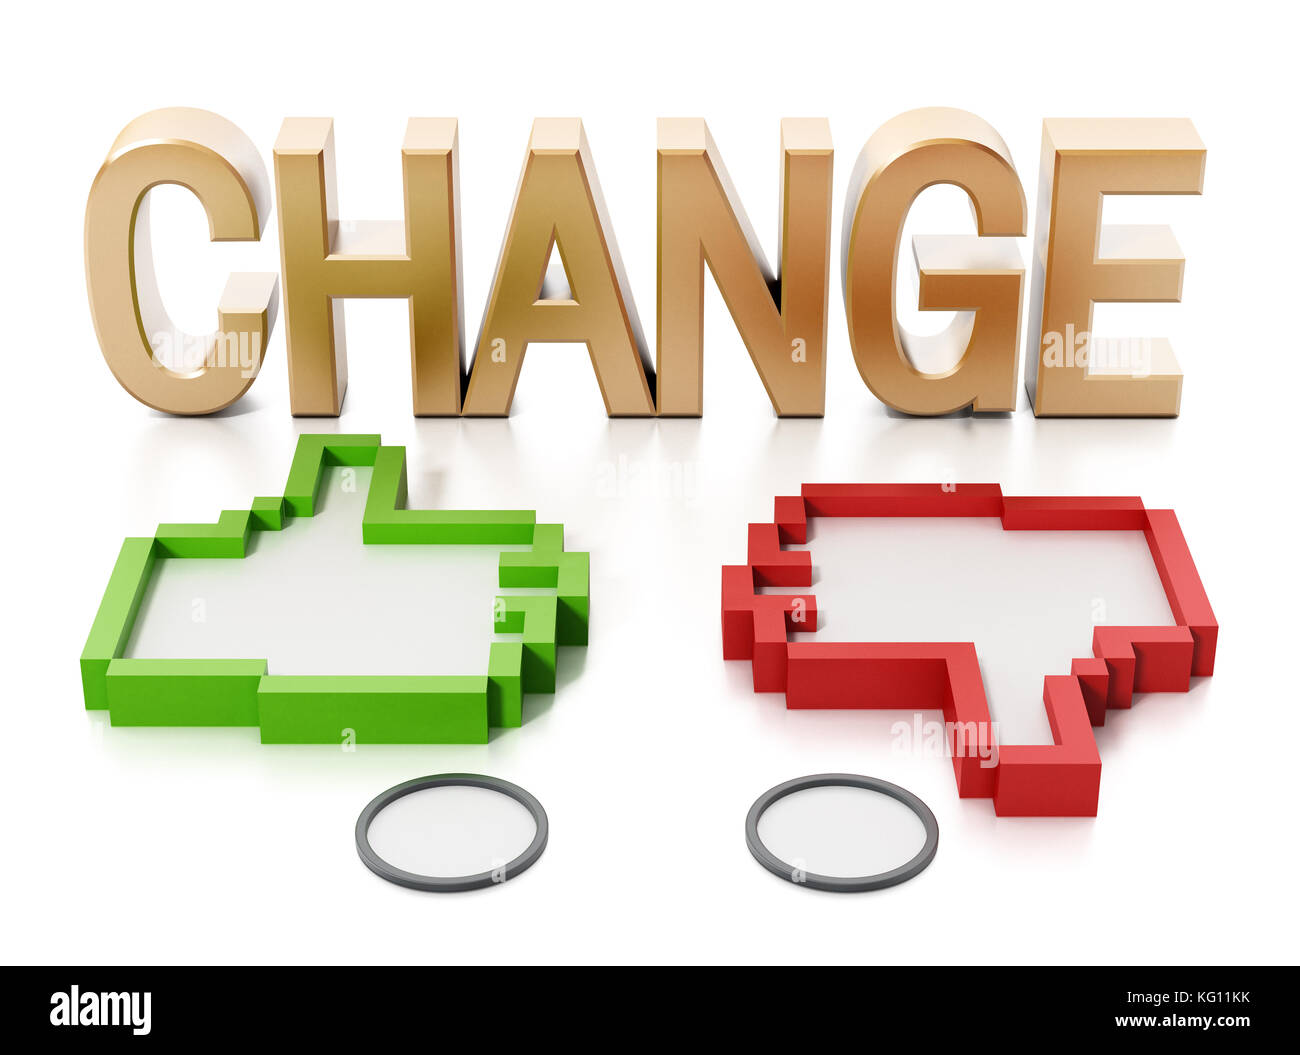 Thumbs up and down icons and change text. 3D illustration. - Stock Image